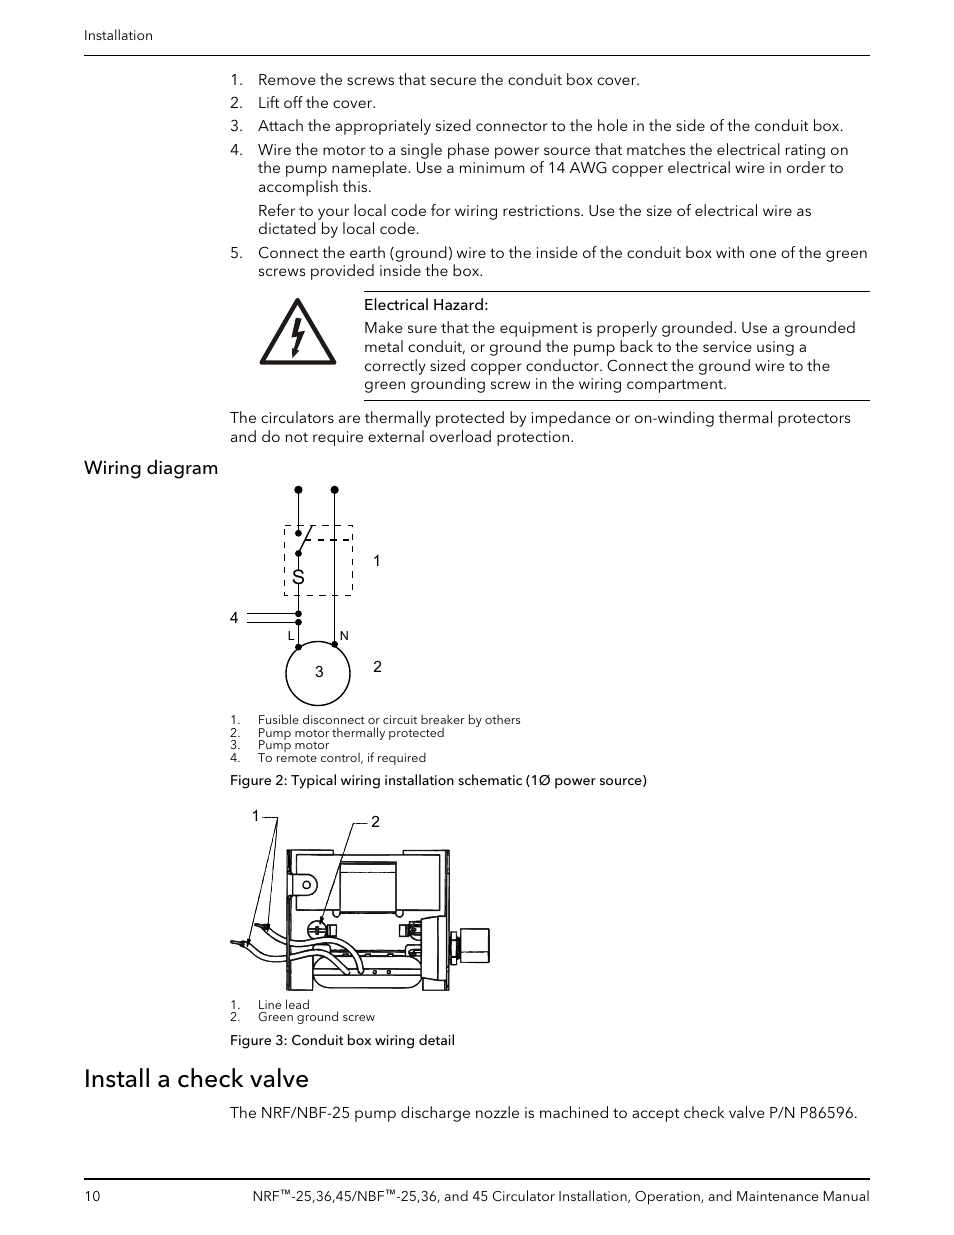 hight resolution of wiring diagram install a check valve bell gossett p86203f nbf 45 circulator user manual page 12 20